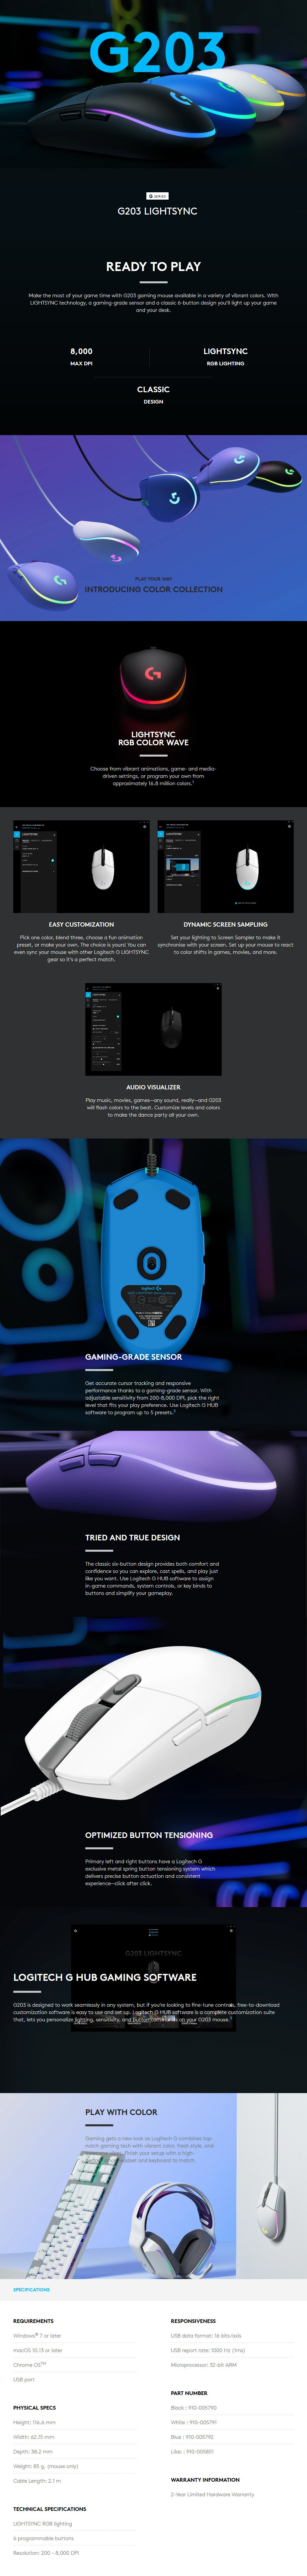 Logitech G203 LIGHTSYNC Gaming Mouse - Lilac - Overview 1